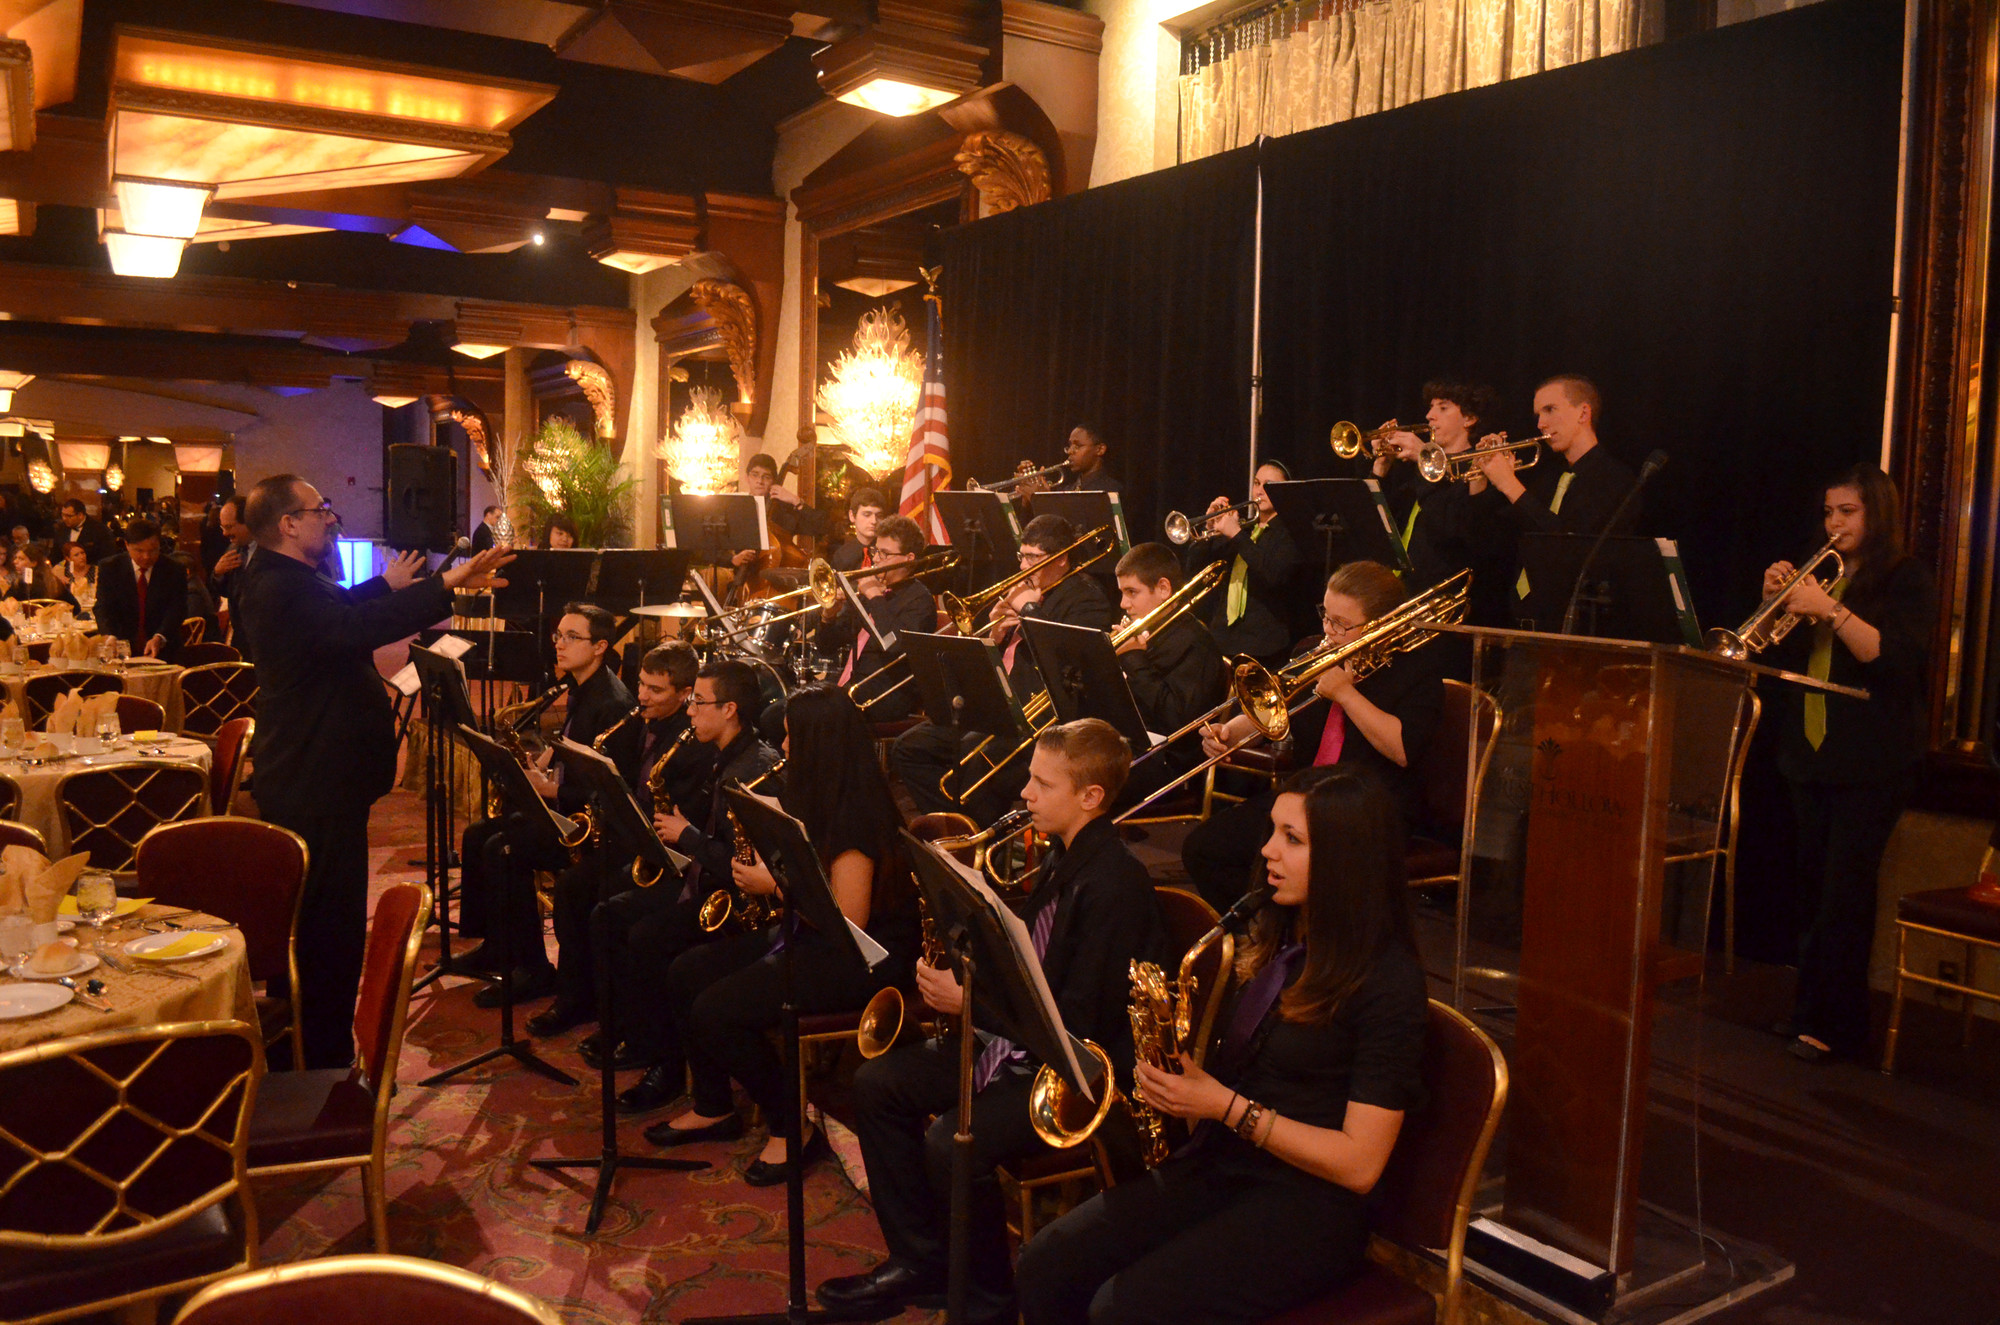 W.T. Clarke High School Jazz Ensemble under the direction of Steven Barbieri performing before the presentations.